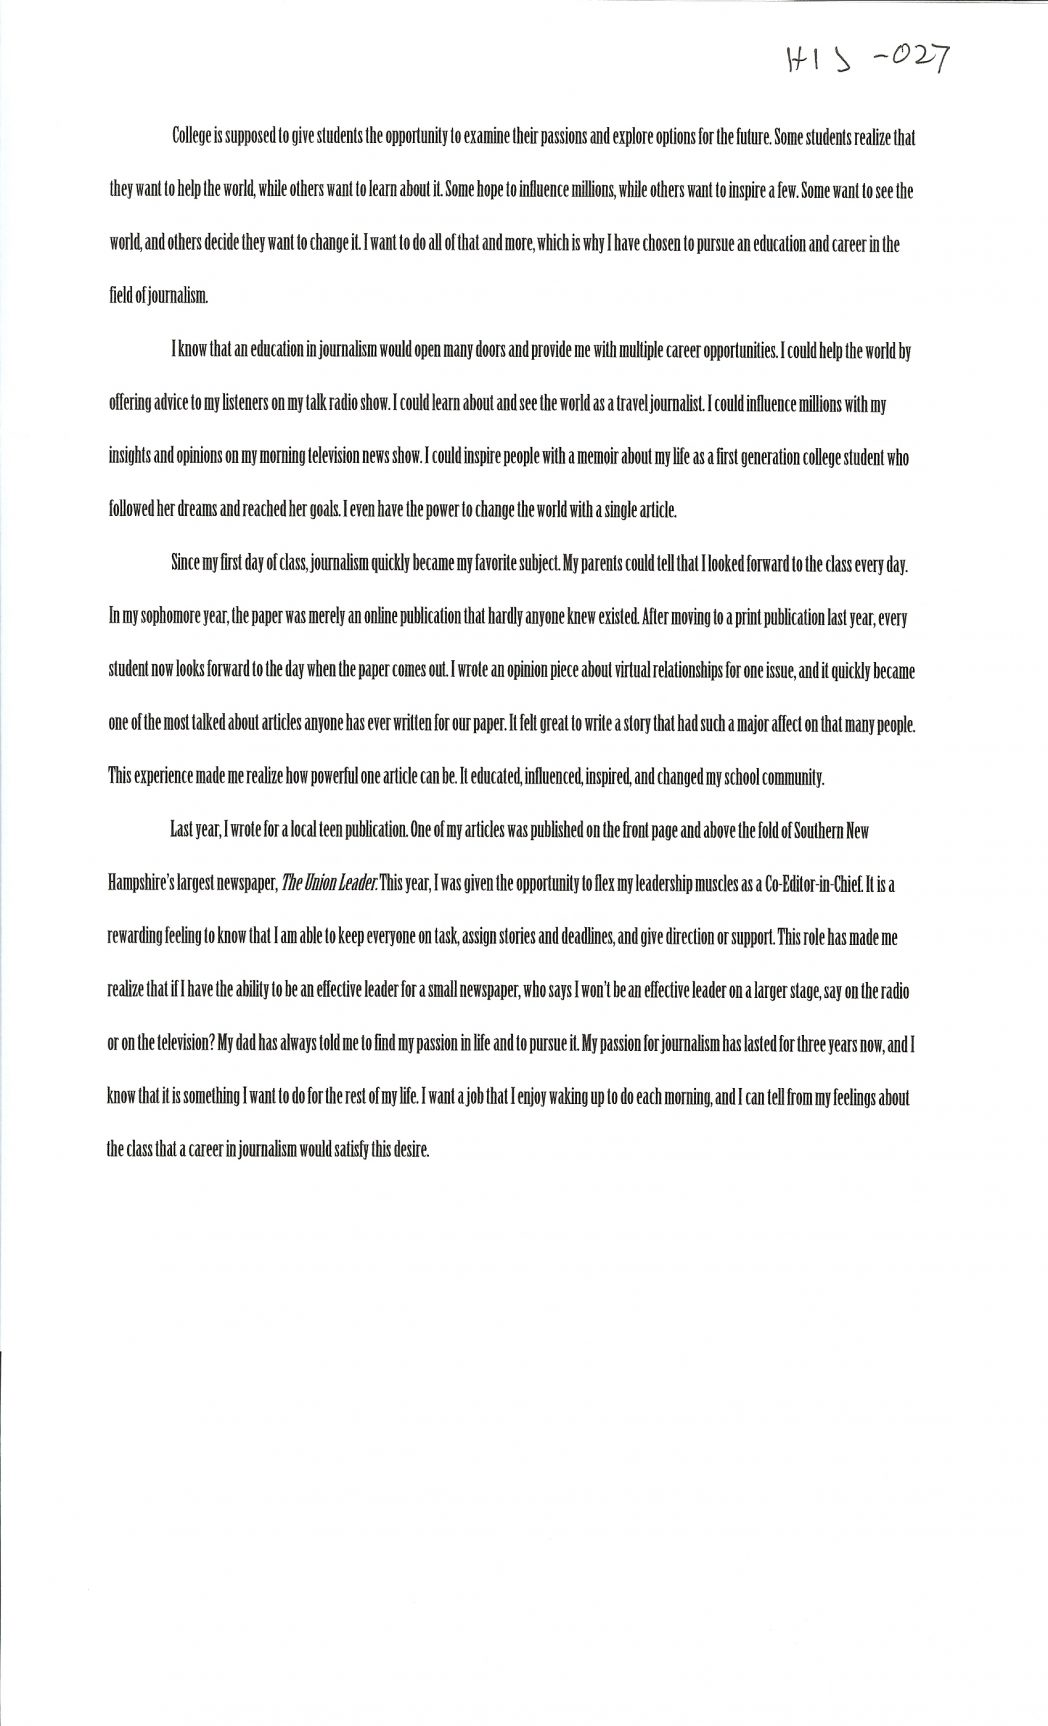 020 Interview Essayss Cover Page For College Admission Essay Samples Free Alexa Serrecchia 1048x1726 Formidable Examples Sample Full